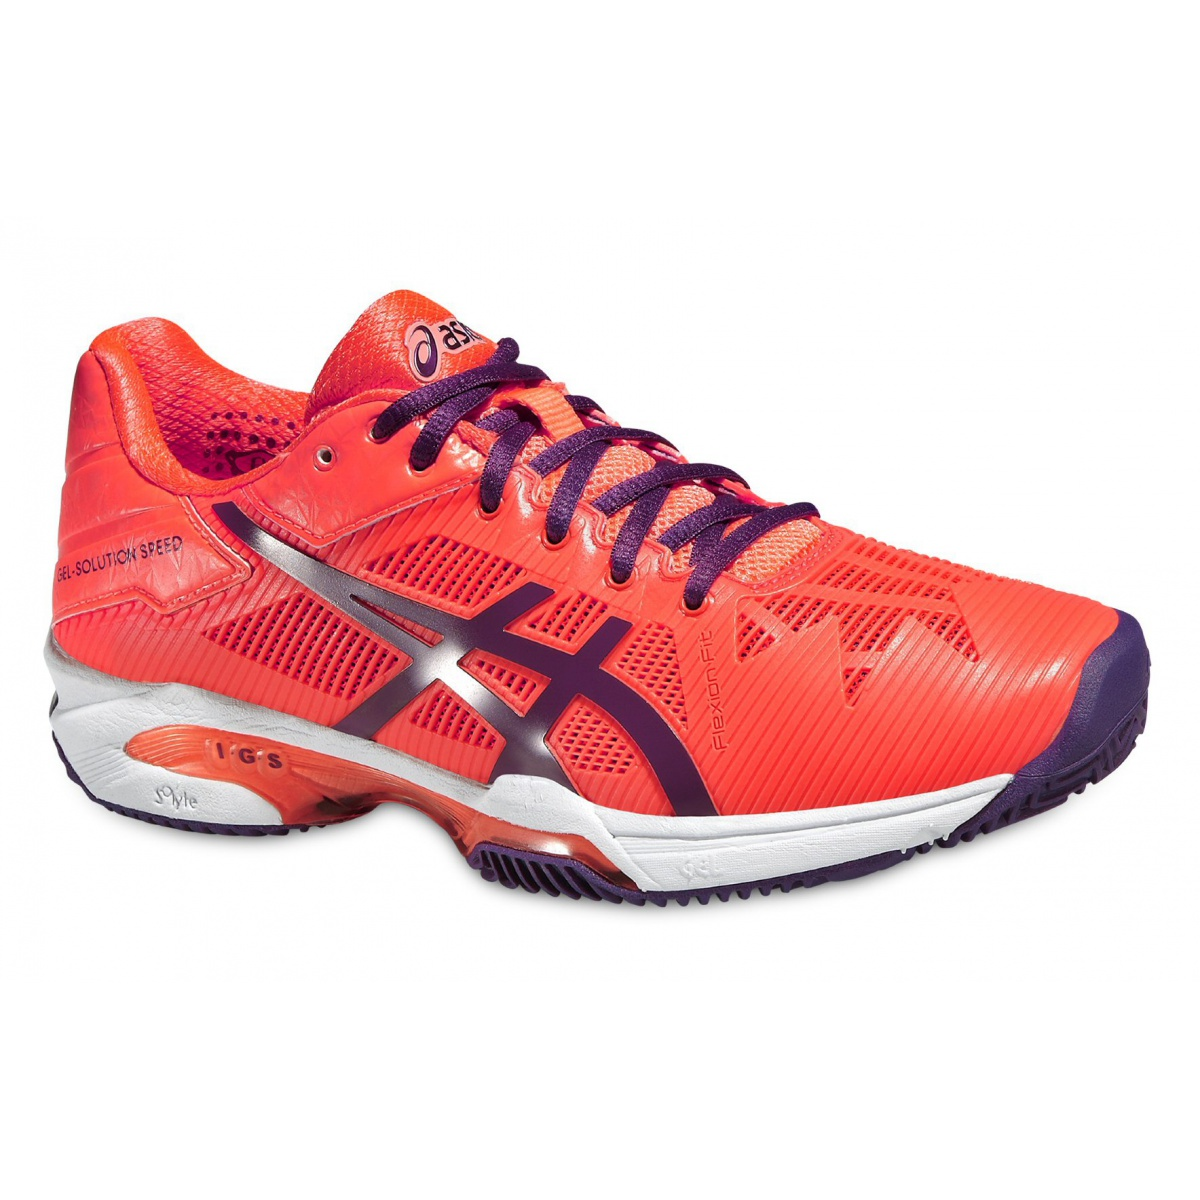 asics gel solution speed 3 clay 2016 koralle tennisschuhe damen versandkostenfrei online bestellen. Black Bedroom Furniture Sets. Home Design Ideas